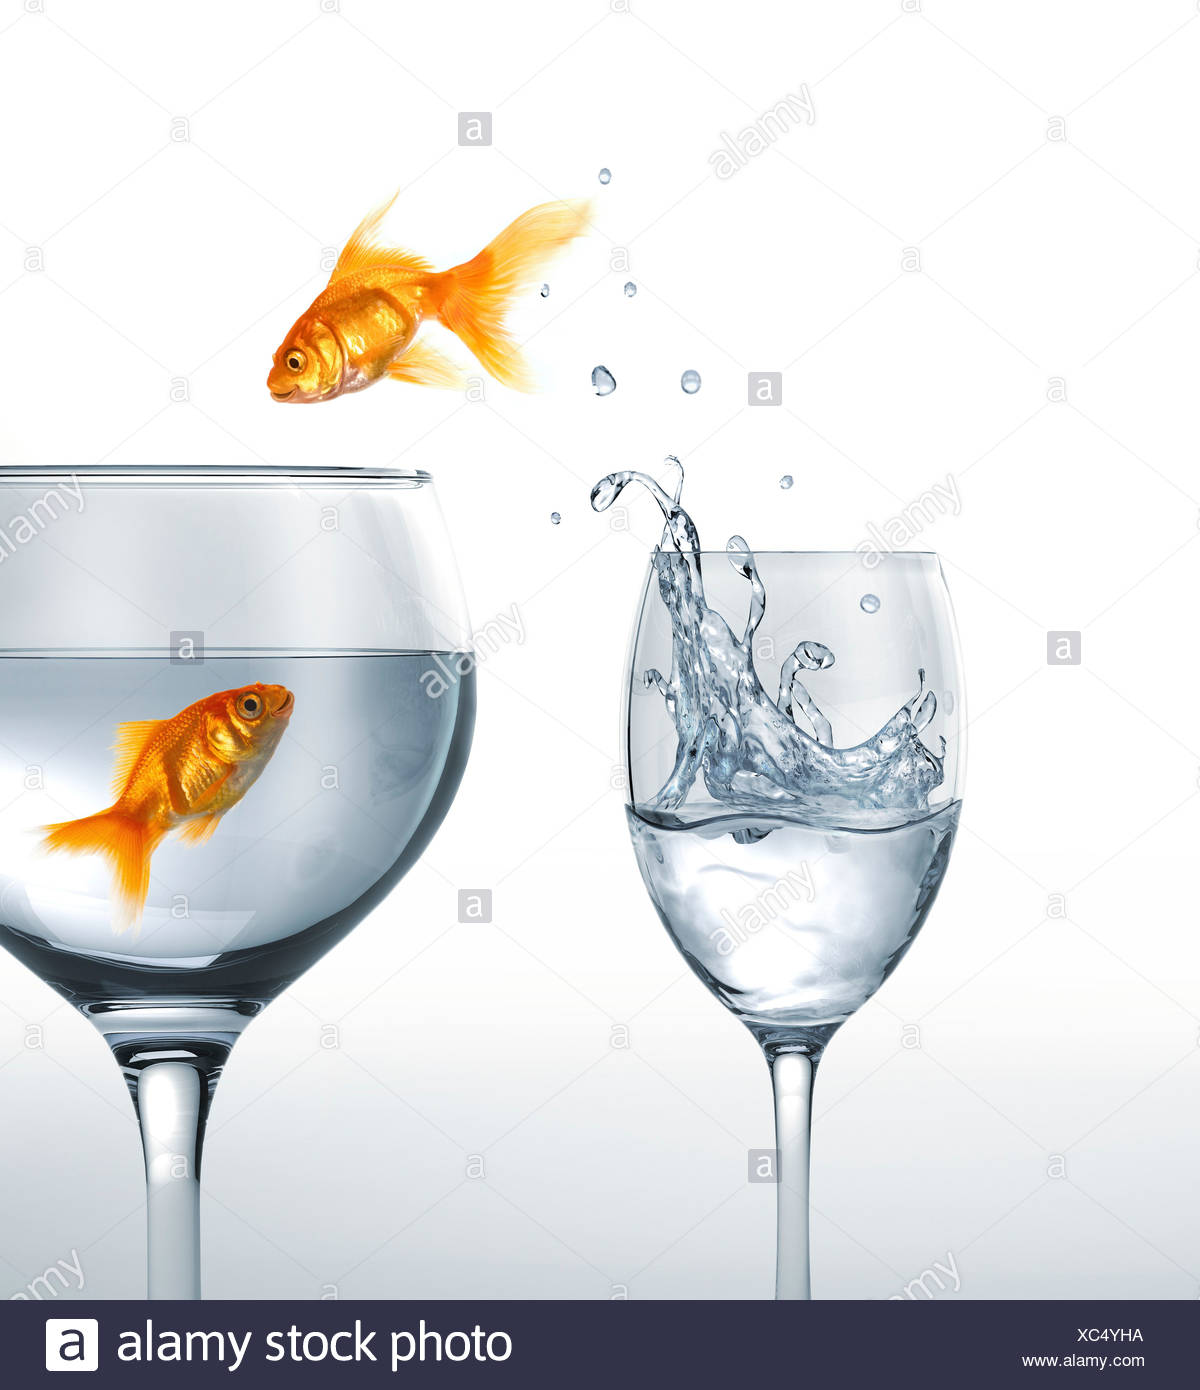 Jumping goldfish artwork - Stock Image